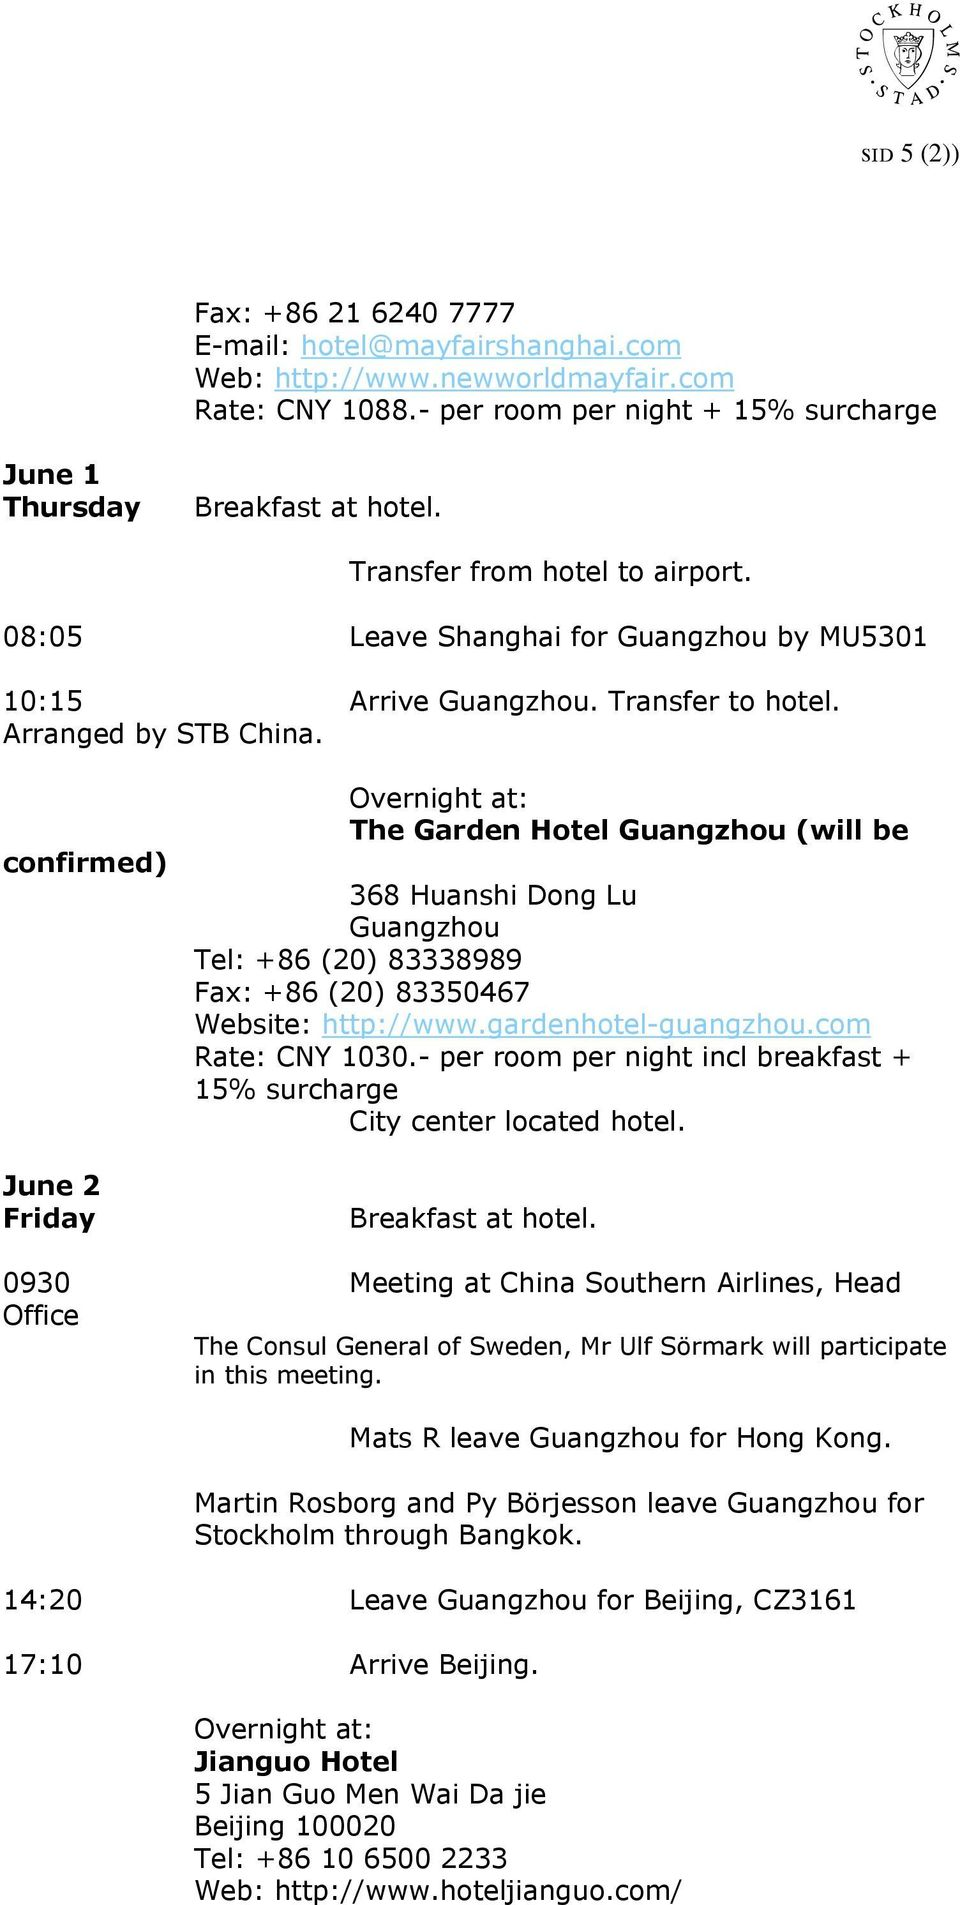 confirmed) June 2 Friday The Garden Hotel Guangzhou (will be 368 Huanshi Dong Lu Guangzhou Tel: +86 (20) 83338989 Fax: +86 (20) 83350467 Website: http://www.gardenhotel-guangzhou.com Rate: CNY 1030.